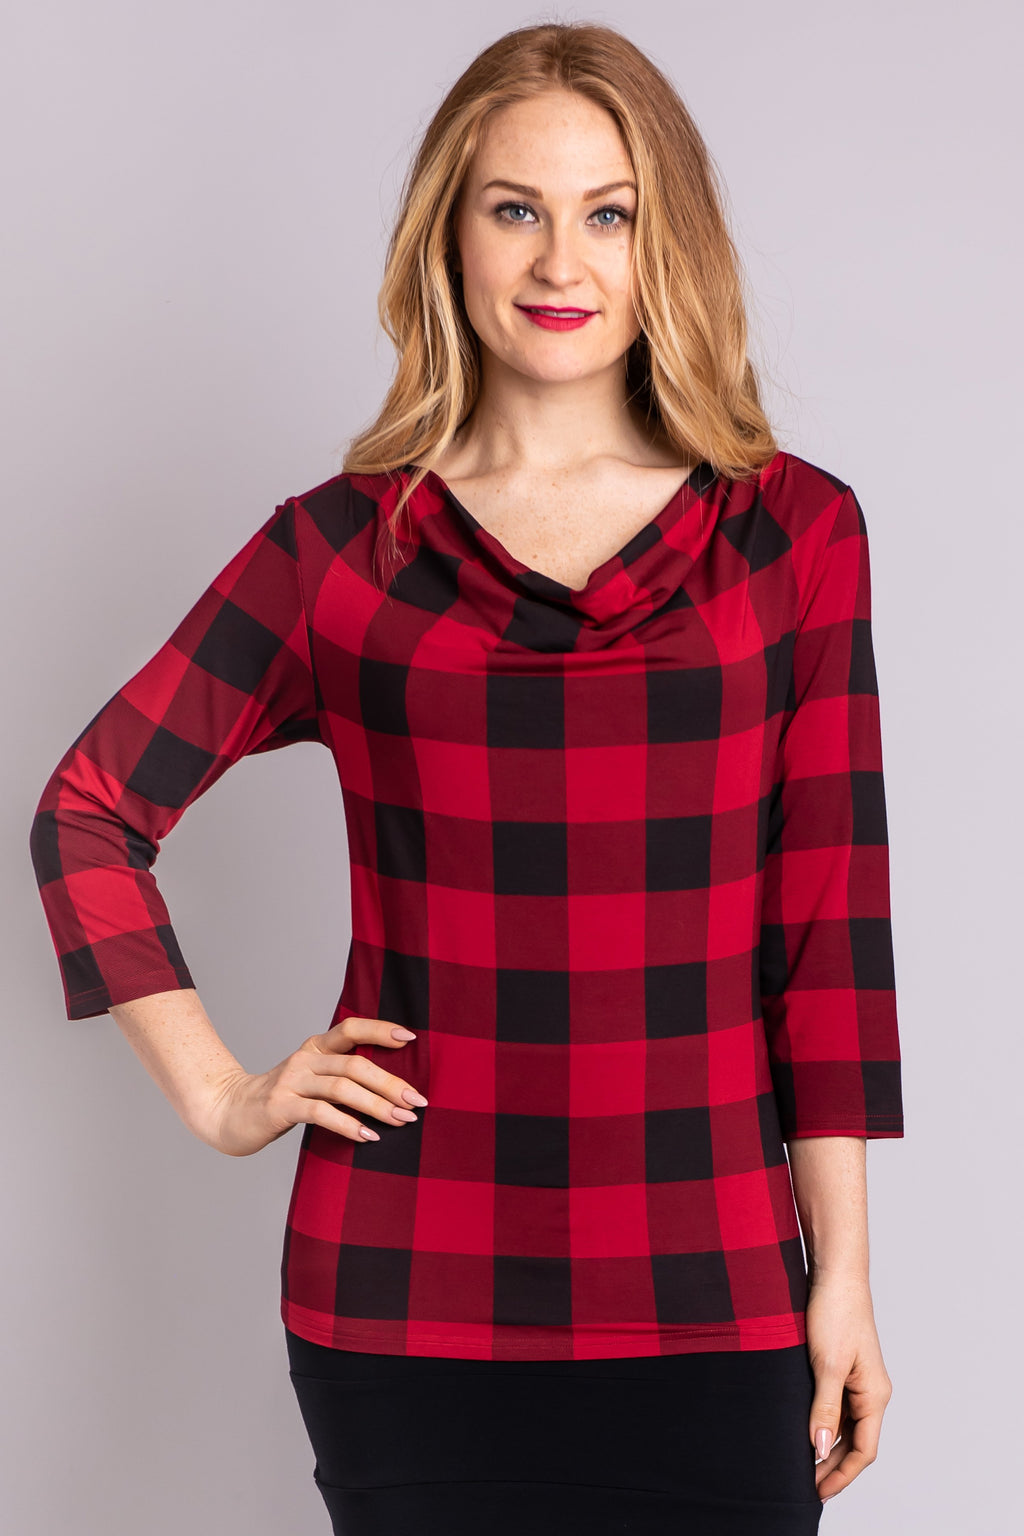 Charisse 3/4 Top, Red Plaid - Blue Sky Clothing Co